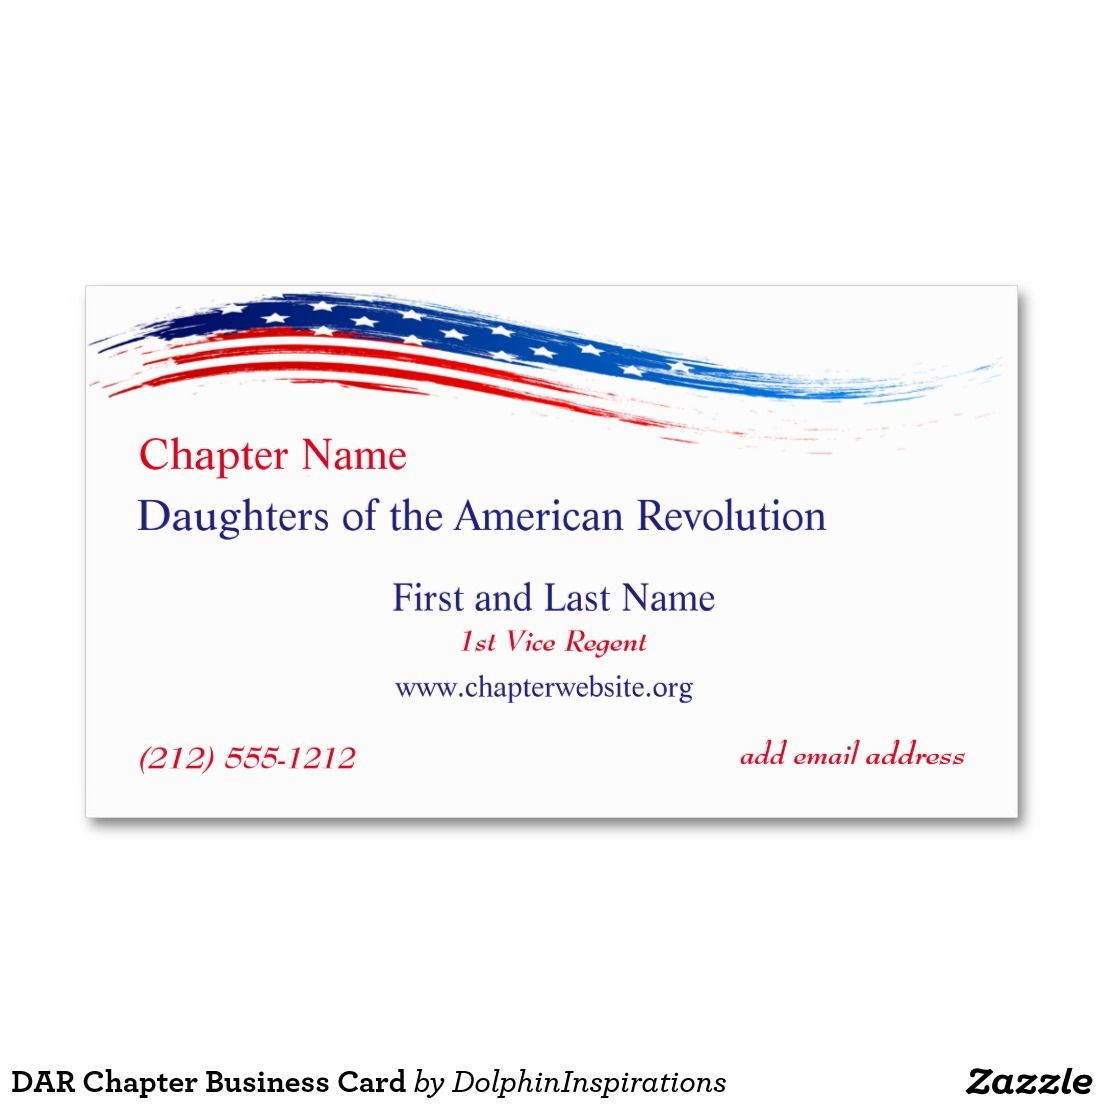 DAR Chapter Business Card | Business cards and American revolution